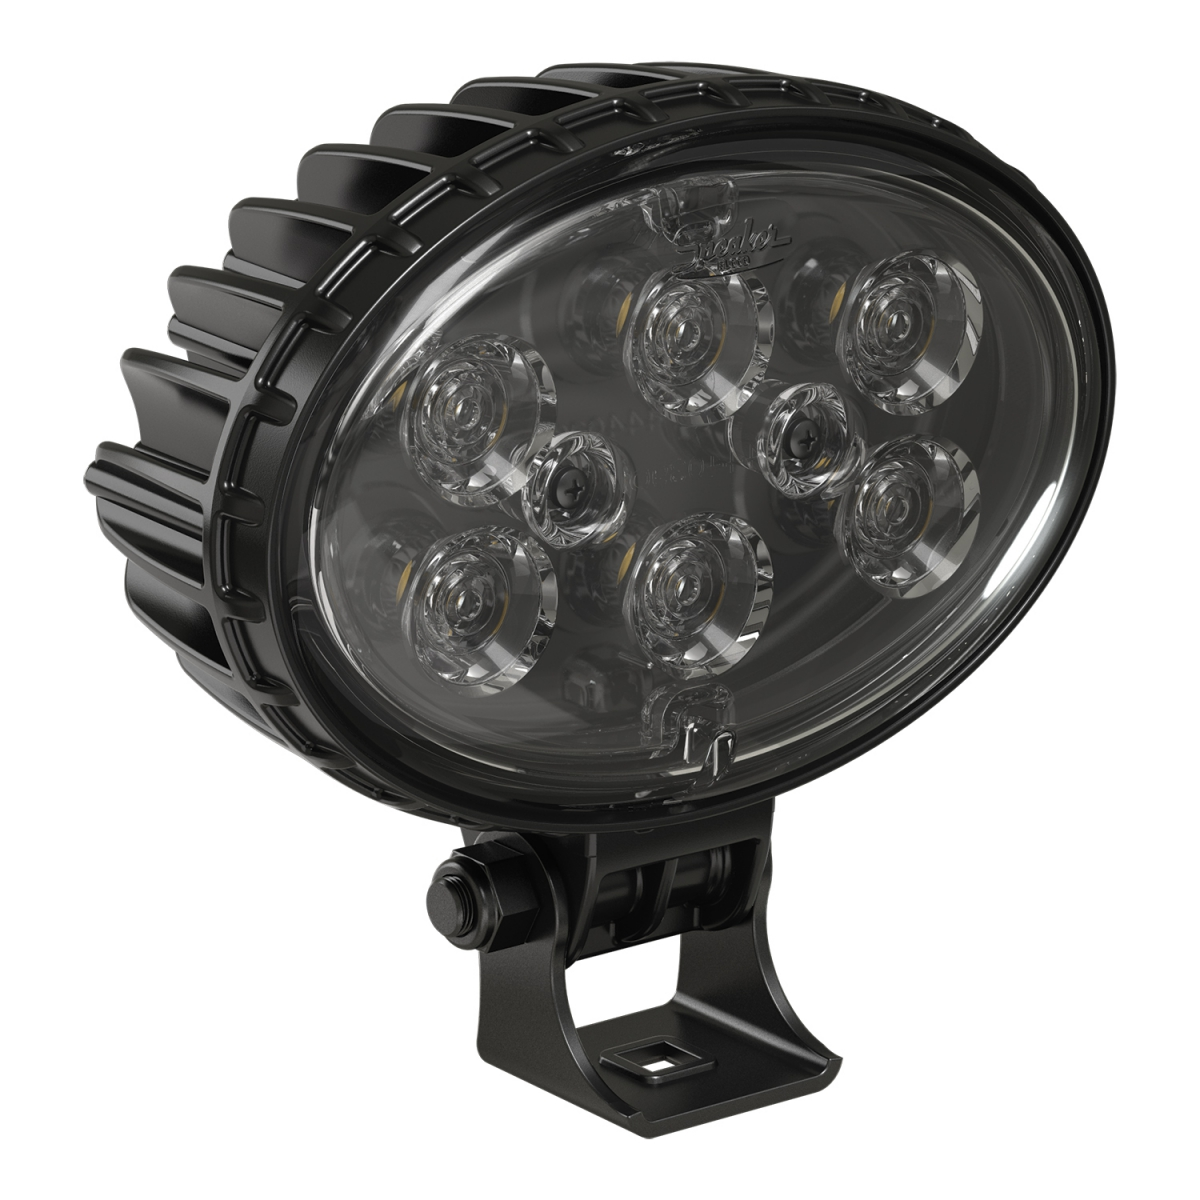 LED Work Light – Model 735